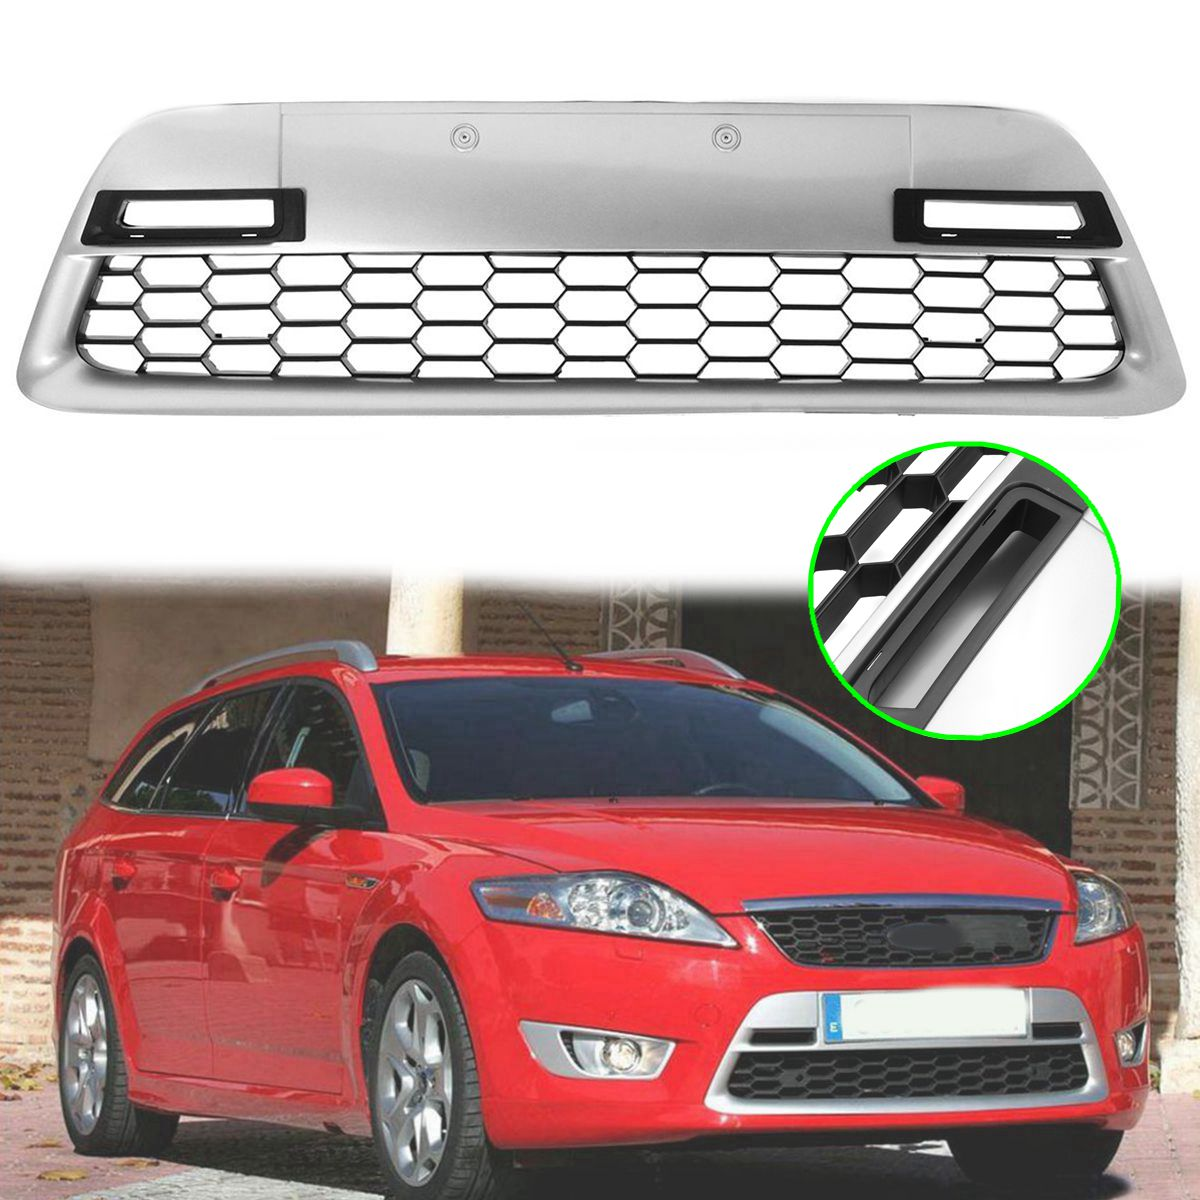 105cm Auto Radiator Centre Bumper Grille Panel Cover Car Grill Panel Trim for FORD Mondeo MK4 2007-2010 for ford mondeo mk4 2007 2014 for mondeo ca2 2007 bonnet hood lock latch catch block 1490198 7s7a 16700 bf